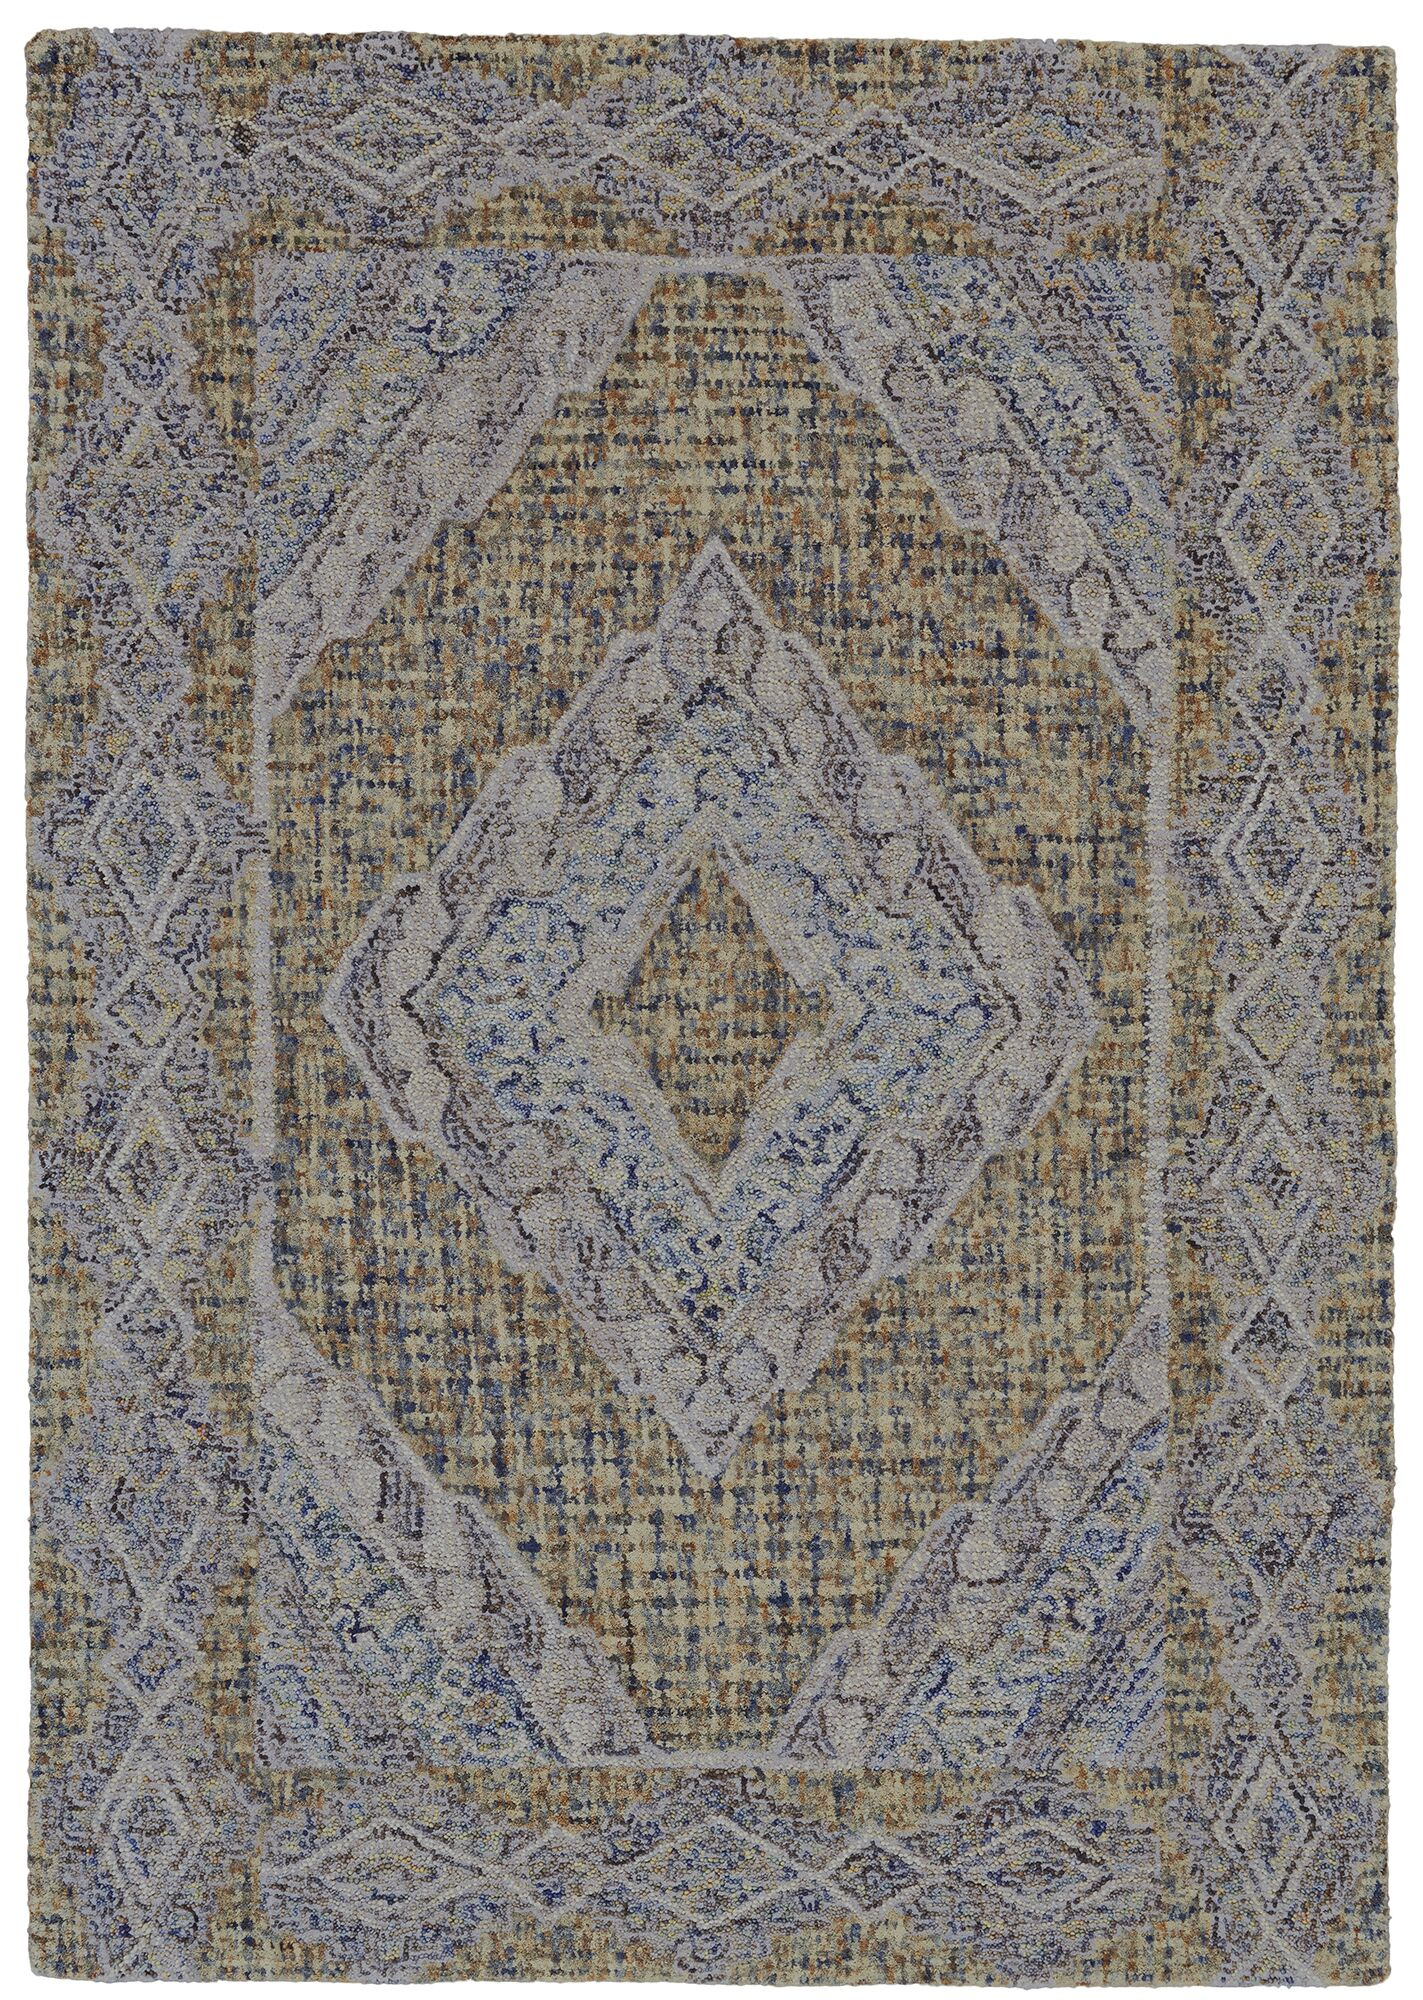 Haeli Hand-Tufted Area Rug Rug Size: Rectangle 8' x 11'